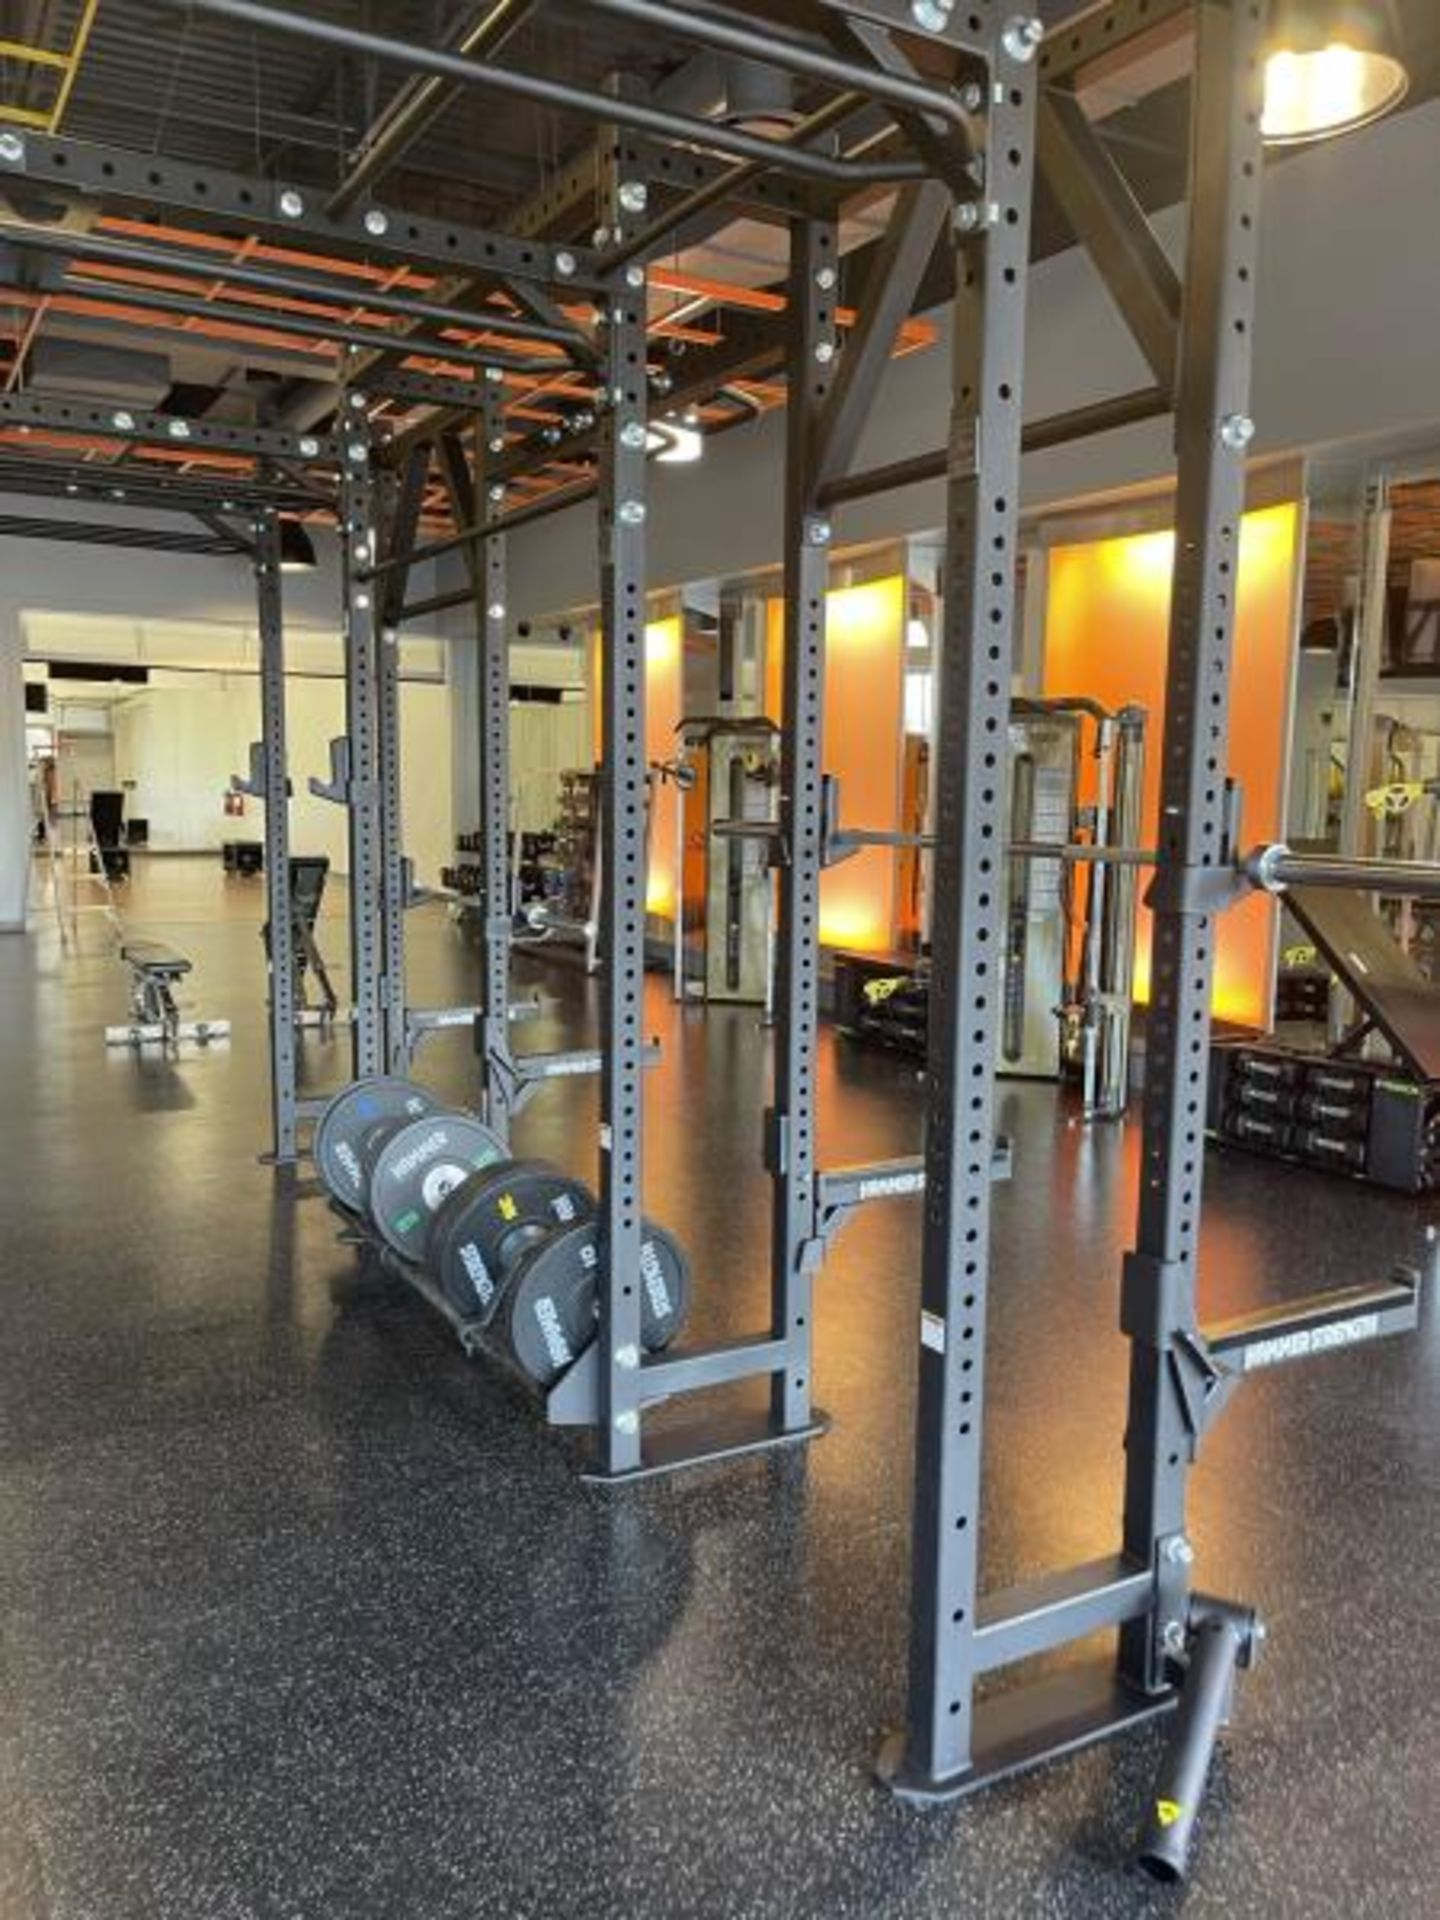 Hammer Strength Multi Station Cage with Hammer Strength Weighted Plates, 4 Bars - Image 4 of 11